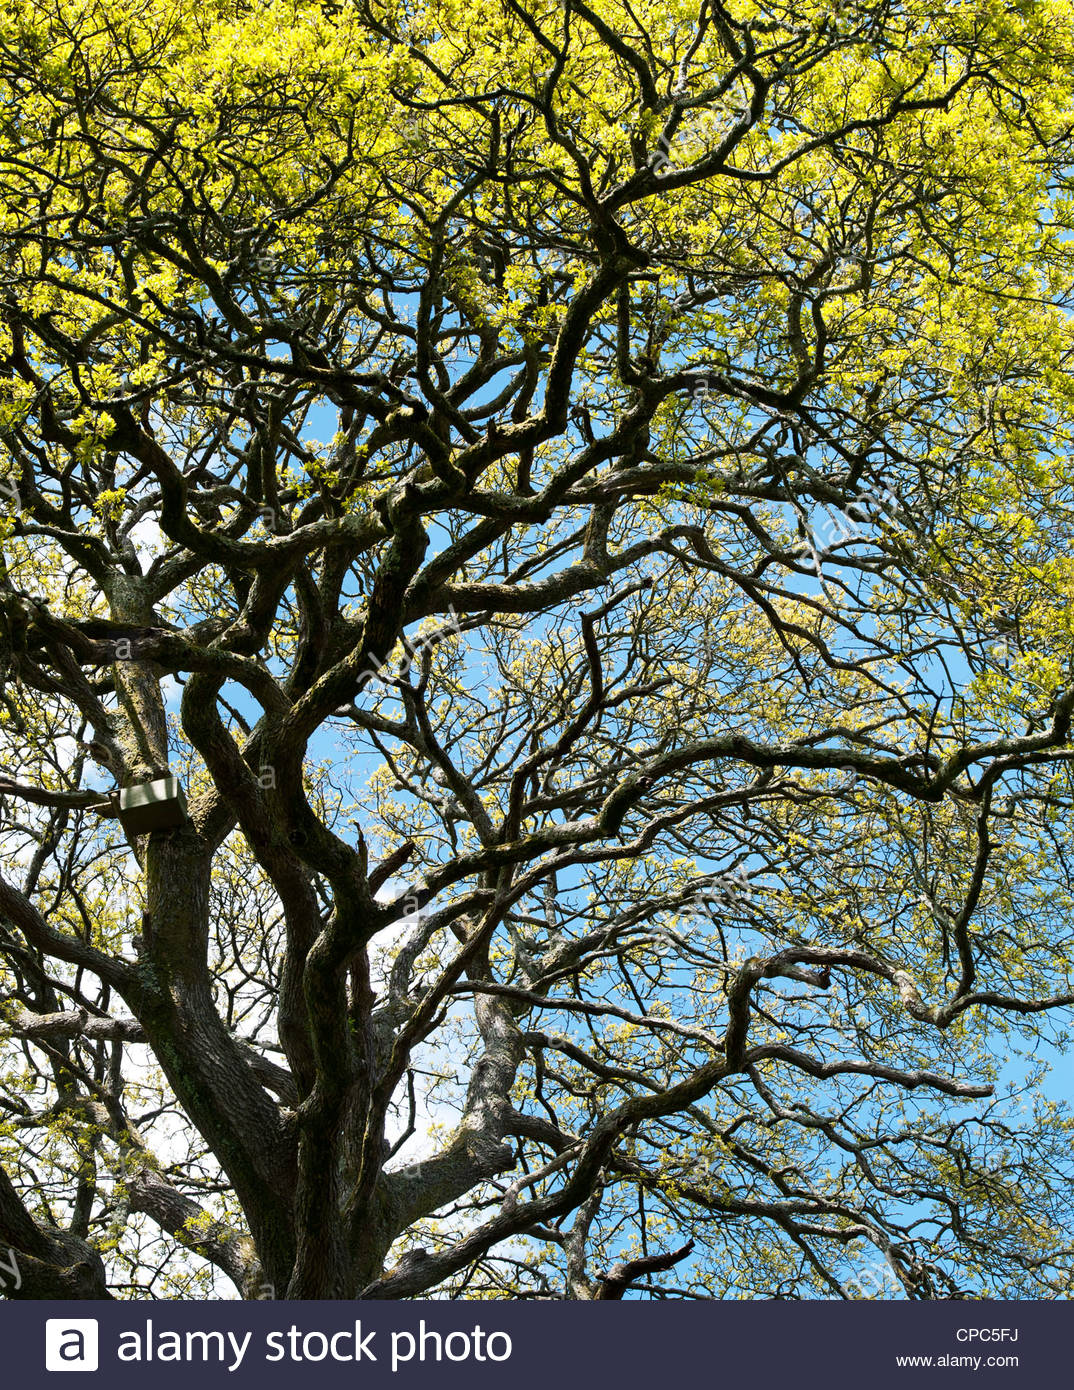 Quercus. Oak trees in english countryside - Stock Image